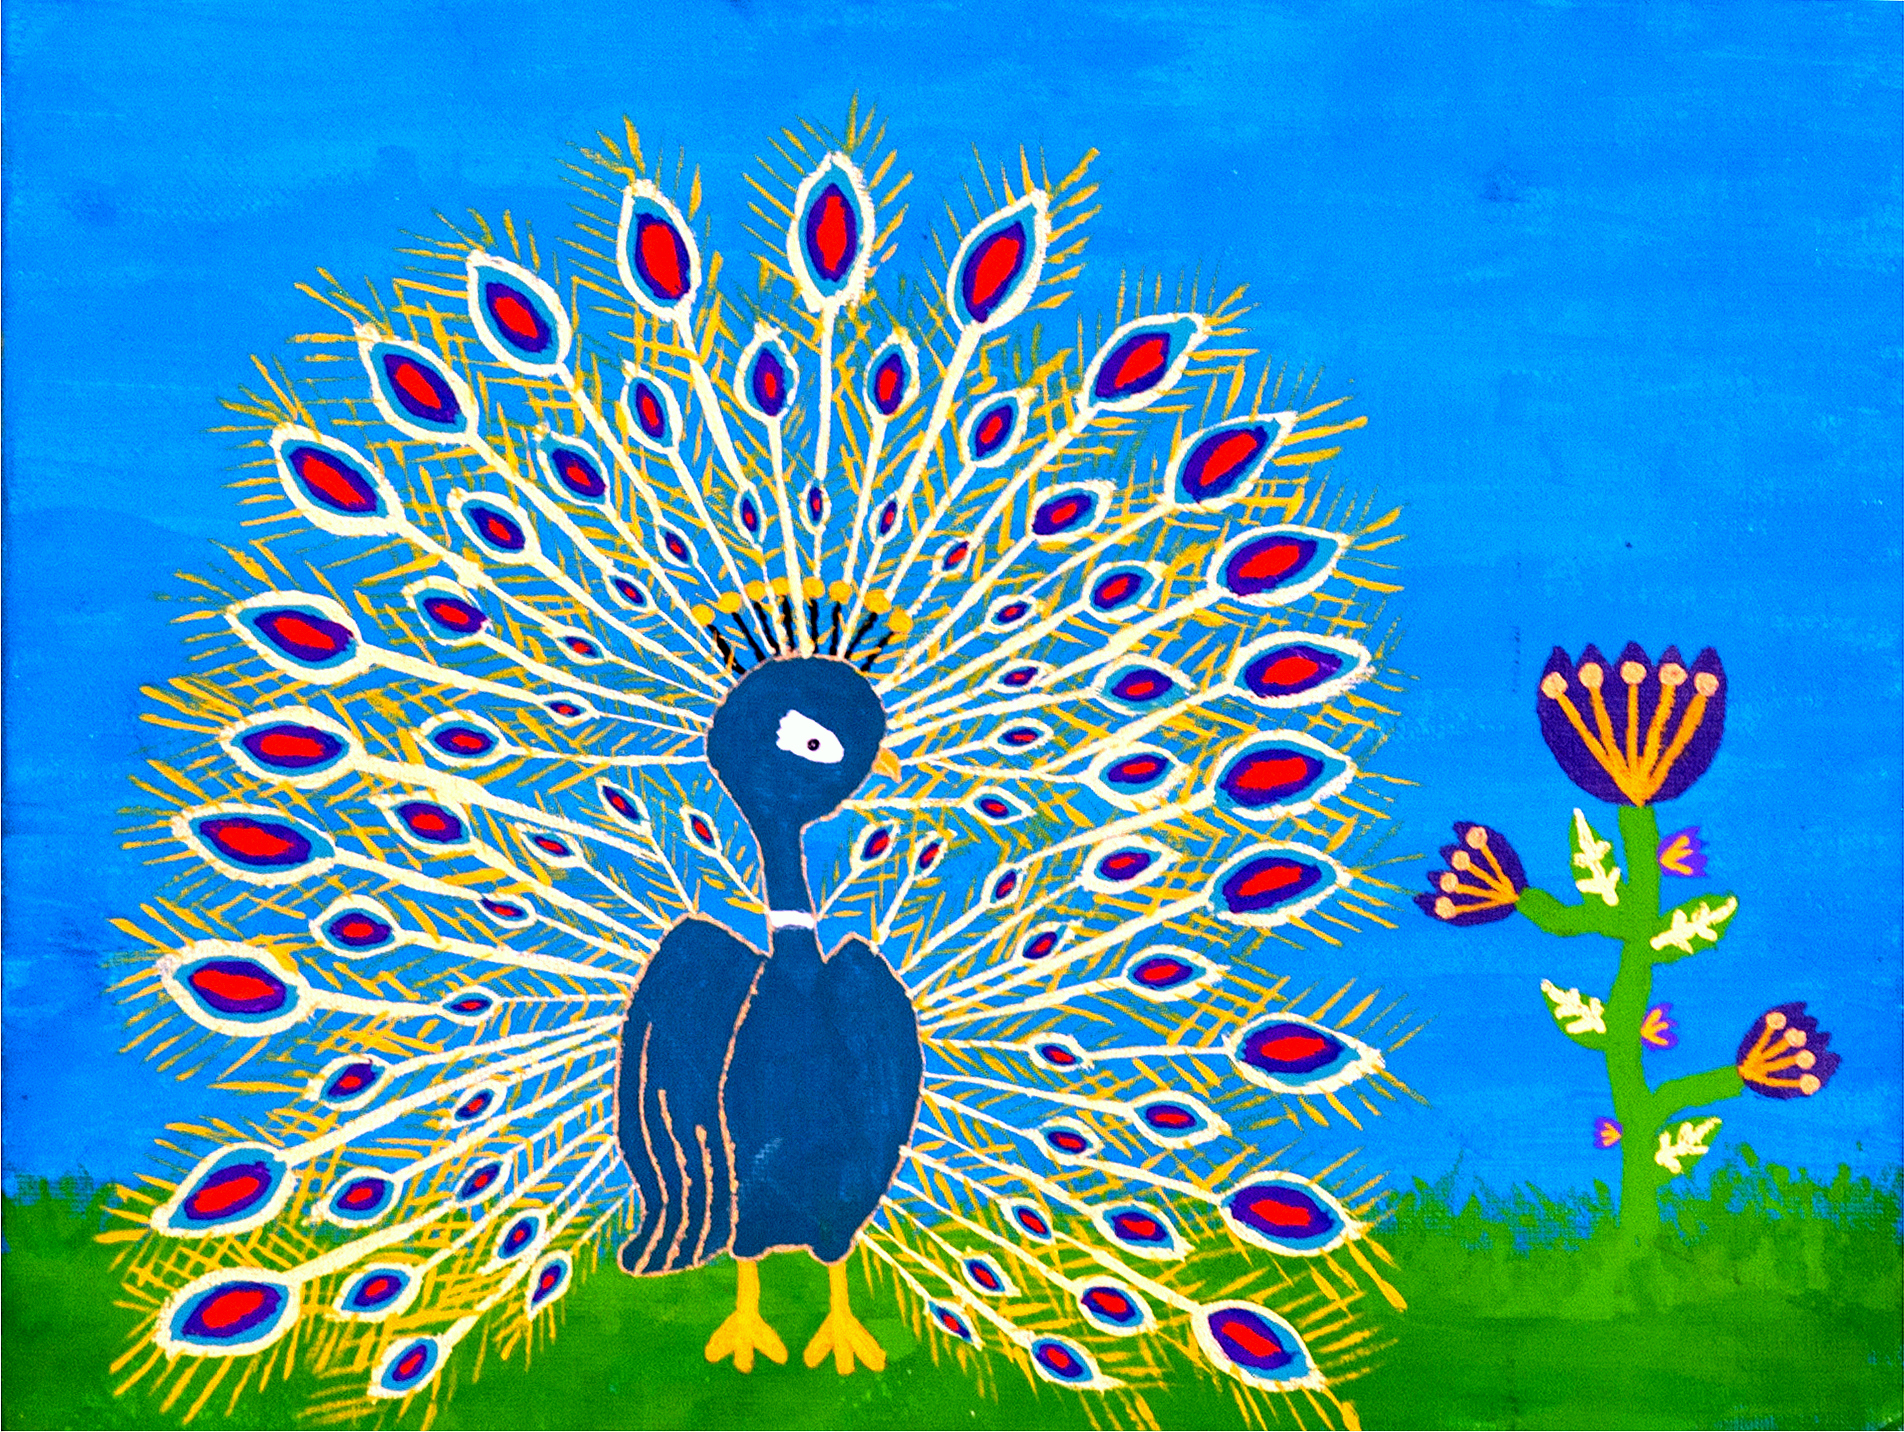 The Beautiful Peacock - Brenda Evelyn Hernández H. Age 11 (2013)